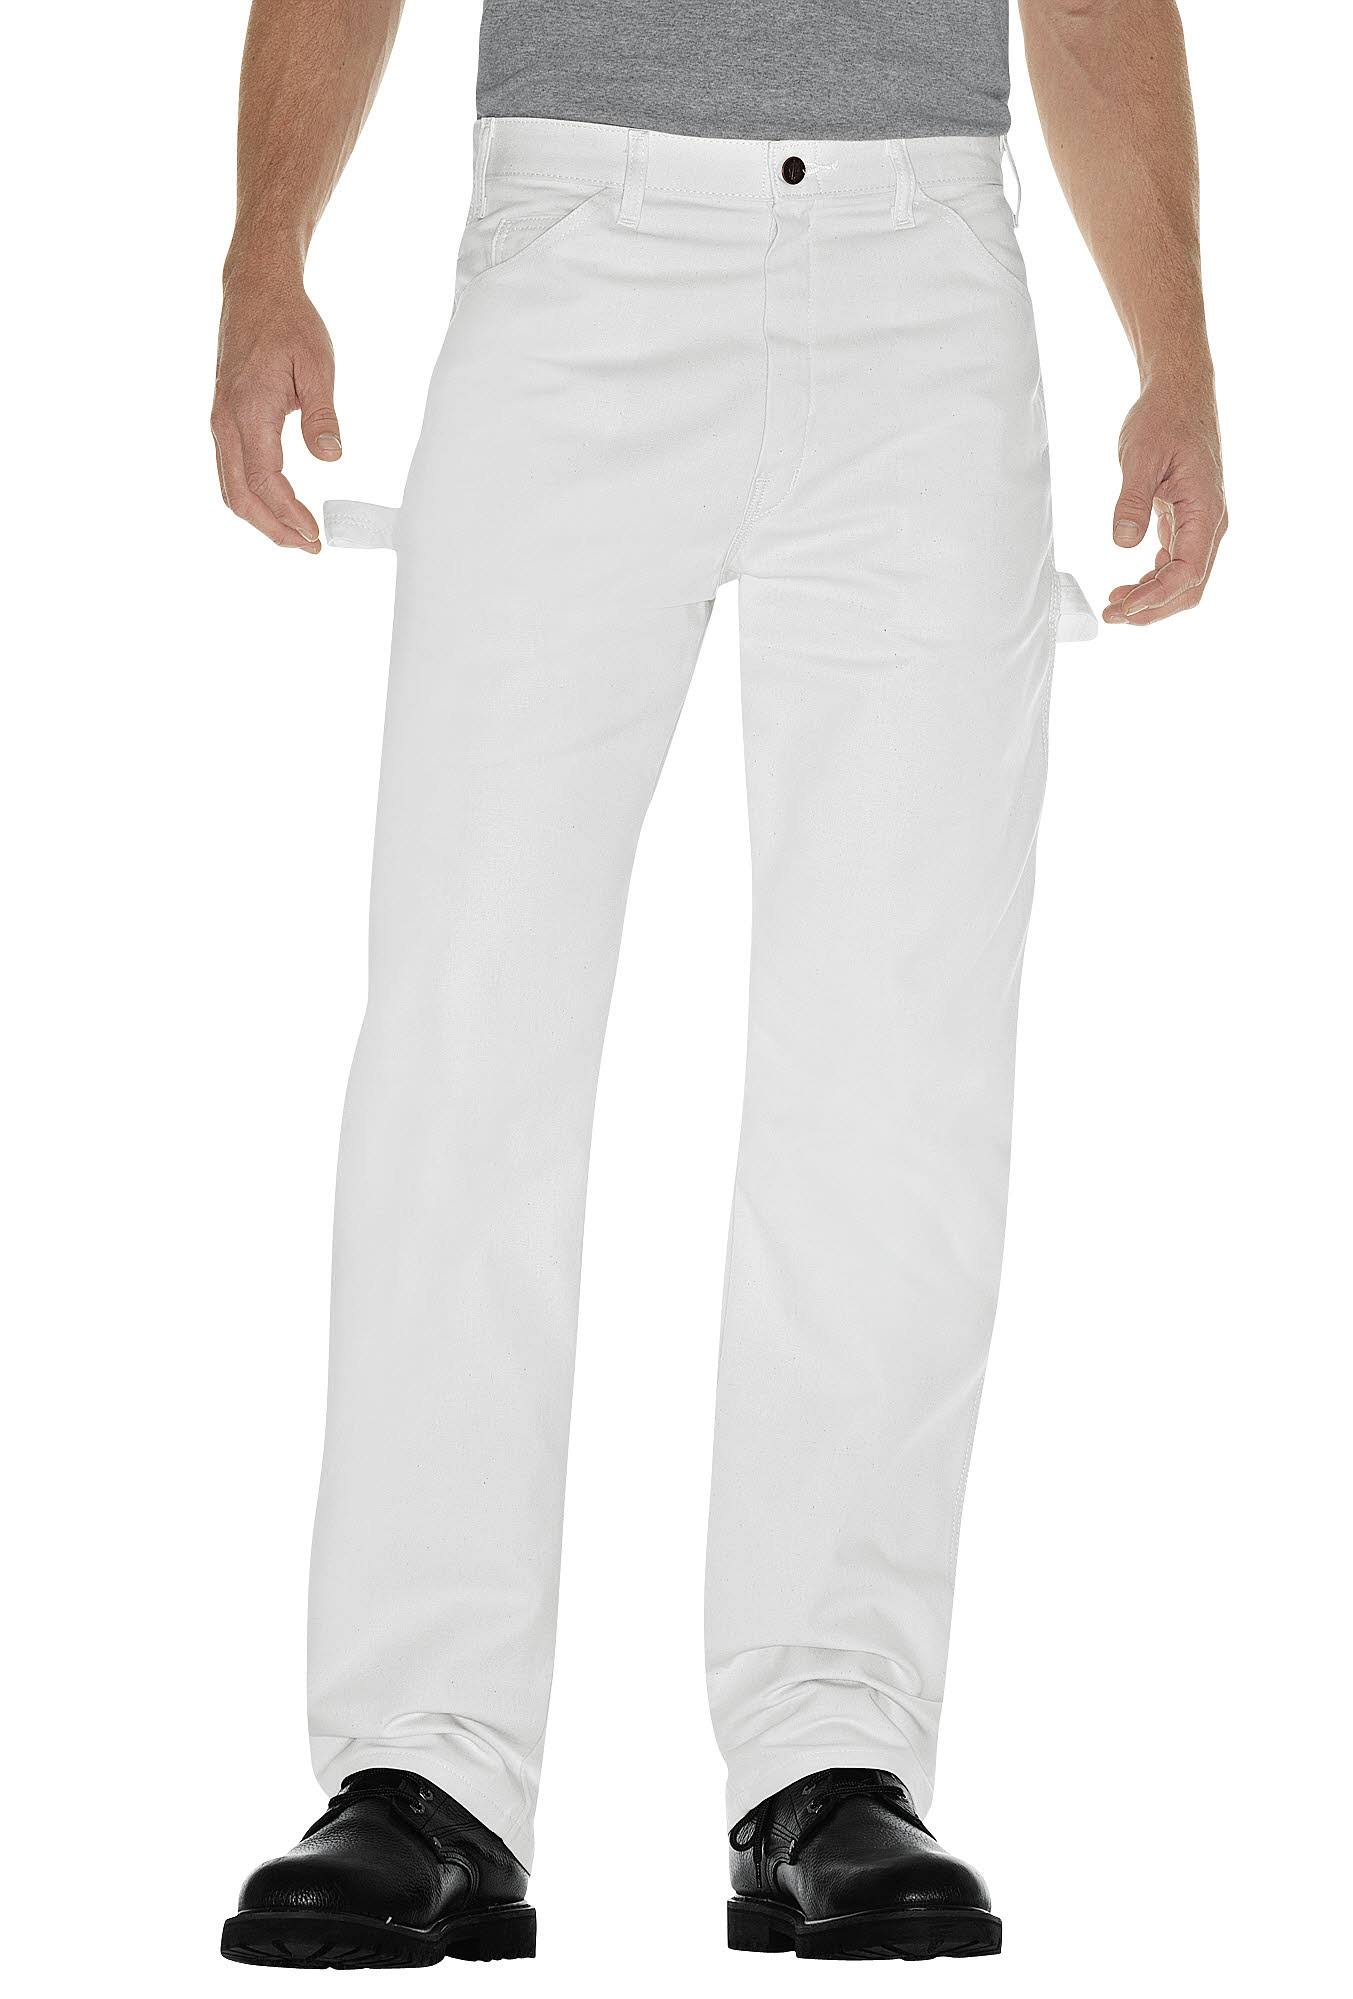 "Dickies Men's Utility Pants - Relaxed Fit, White, 36"" x 30"""